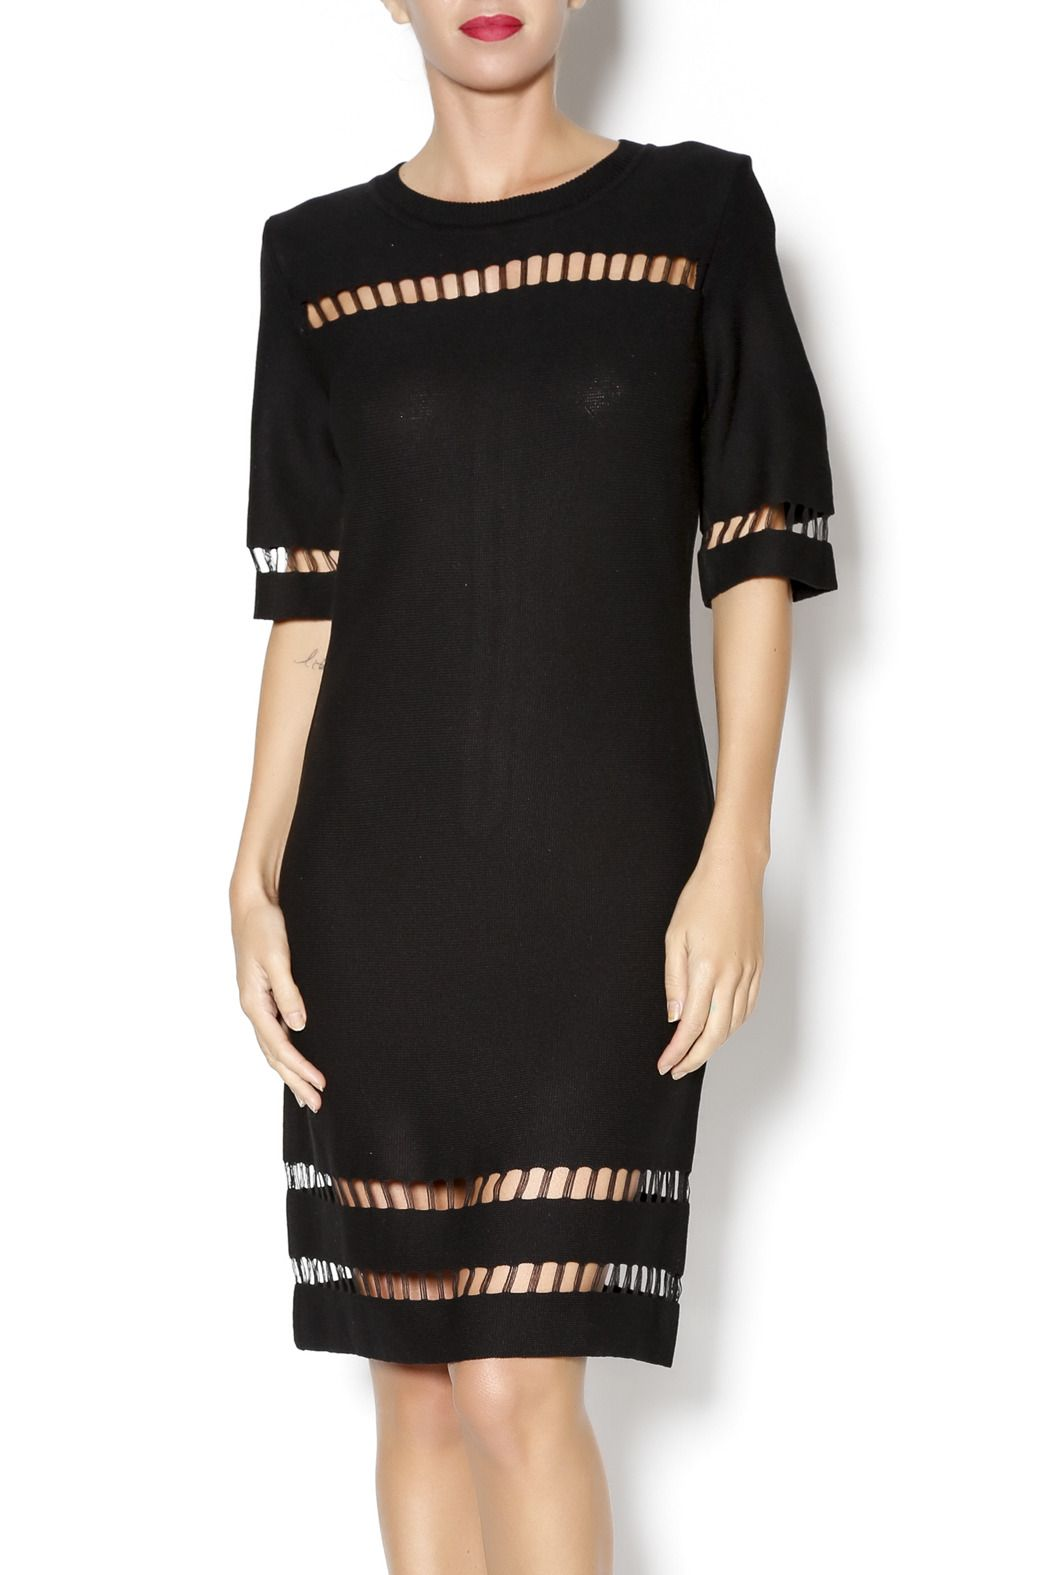 2052d9da7617 Black short sleeve sweater dress with cutouts and exposed back silver  zipper. Black Knit Cutout Dress by J.O.A.. Clothing - Dresses Clothing -  Sweaters ...